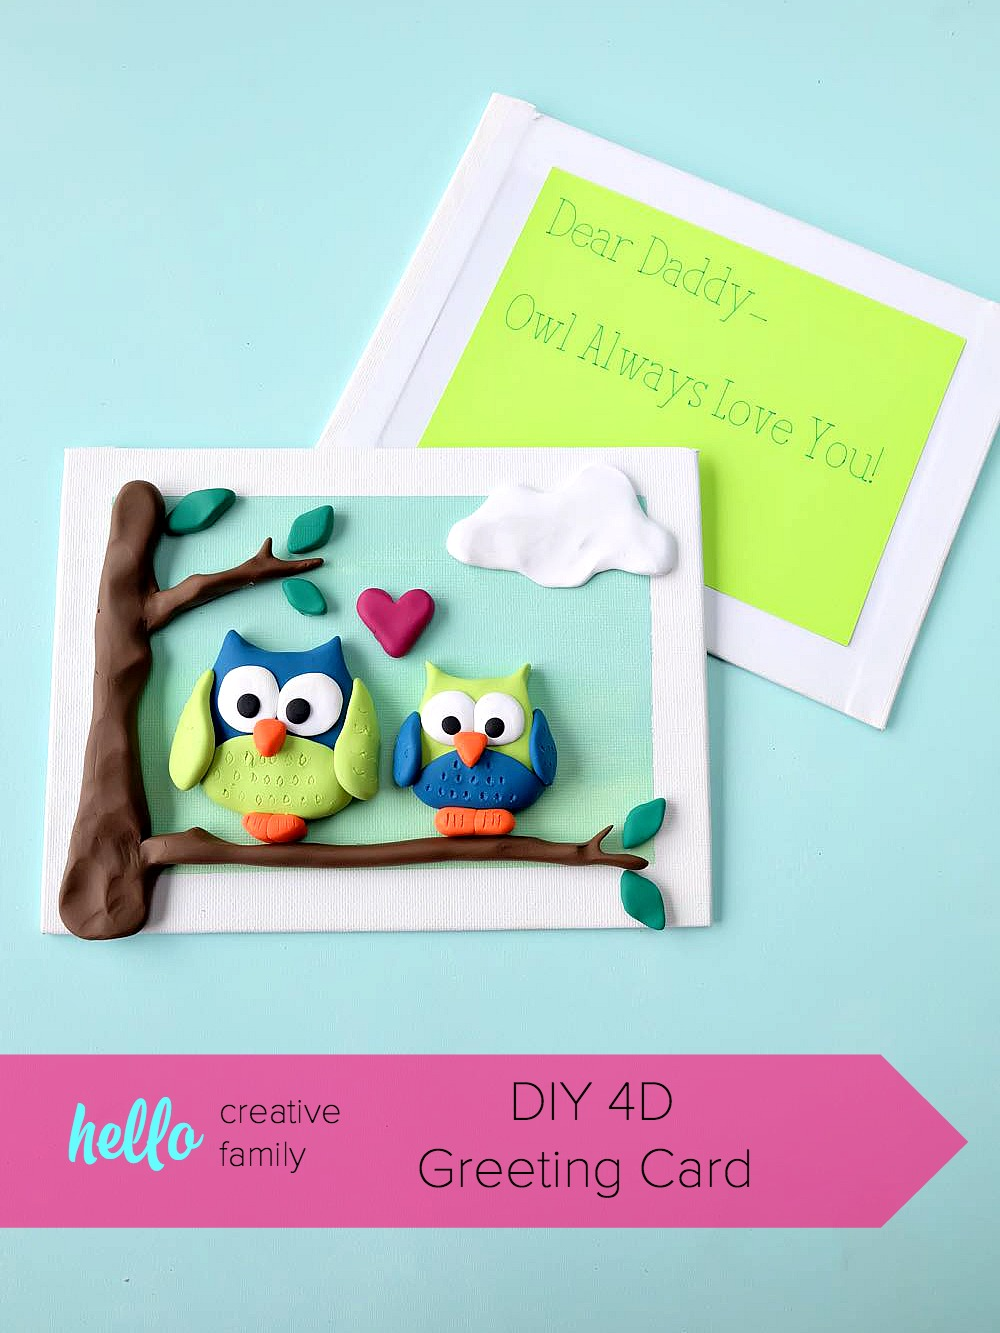 Diy 4d greeting card hello creative family make an adorable 4d greeting card using polymer clay and a dollar store artist canvas m4hsunfo